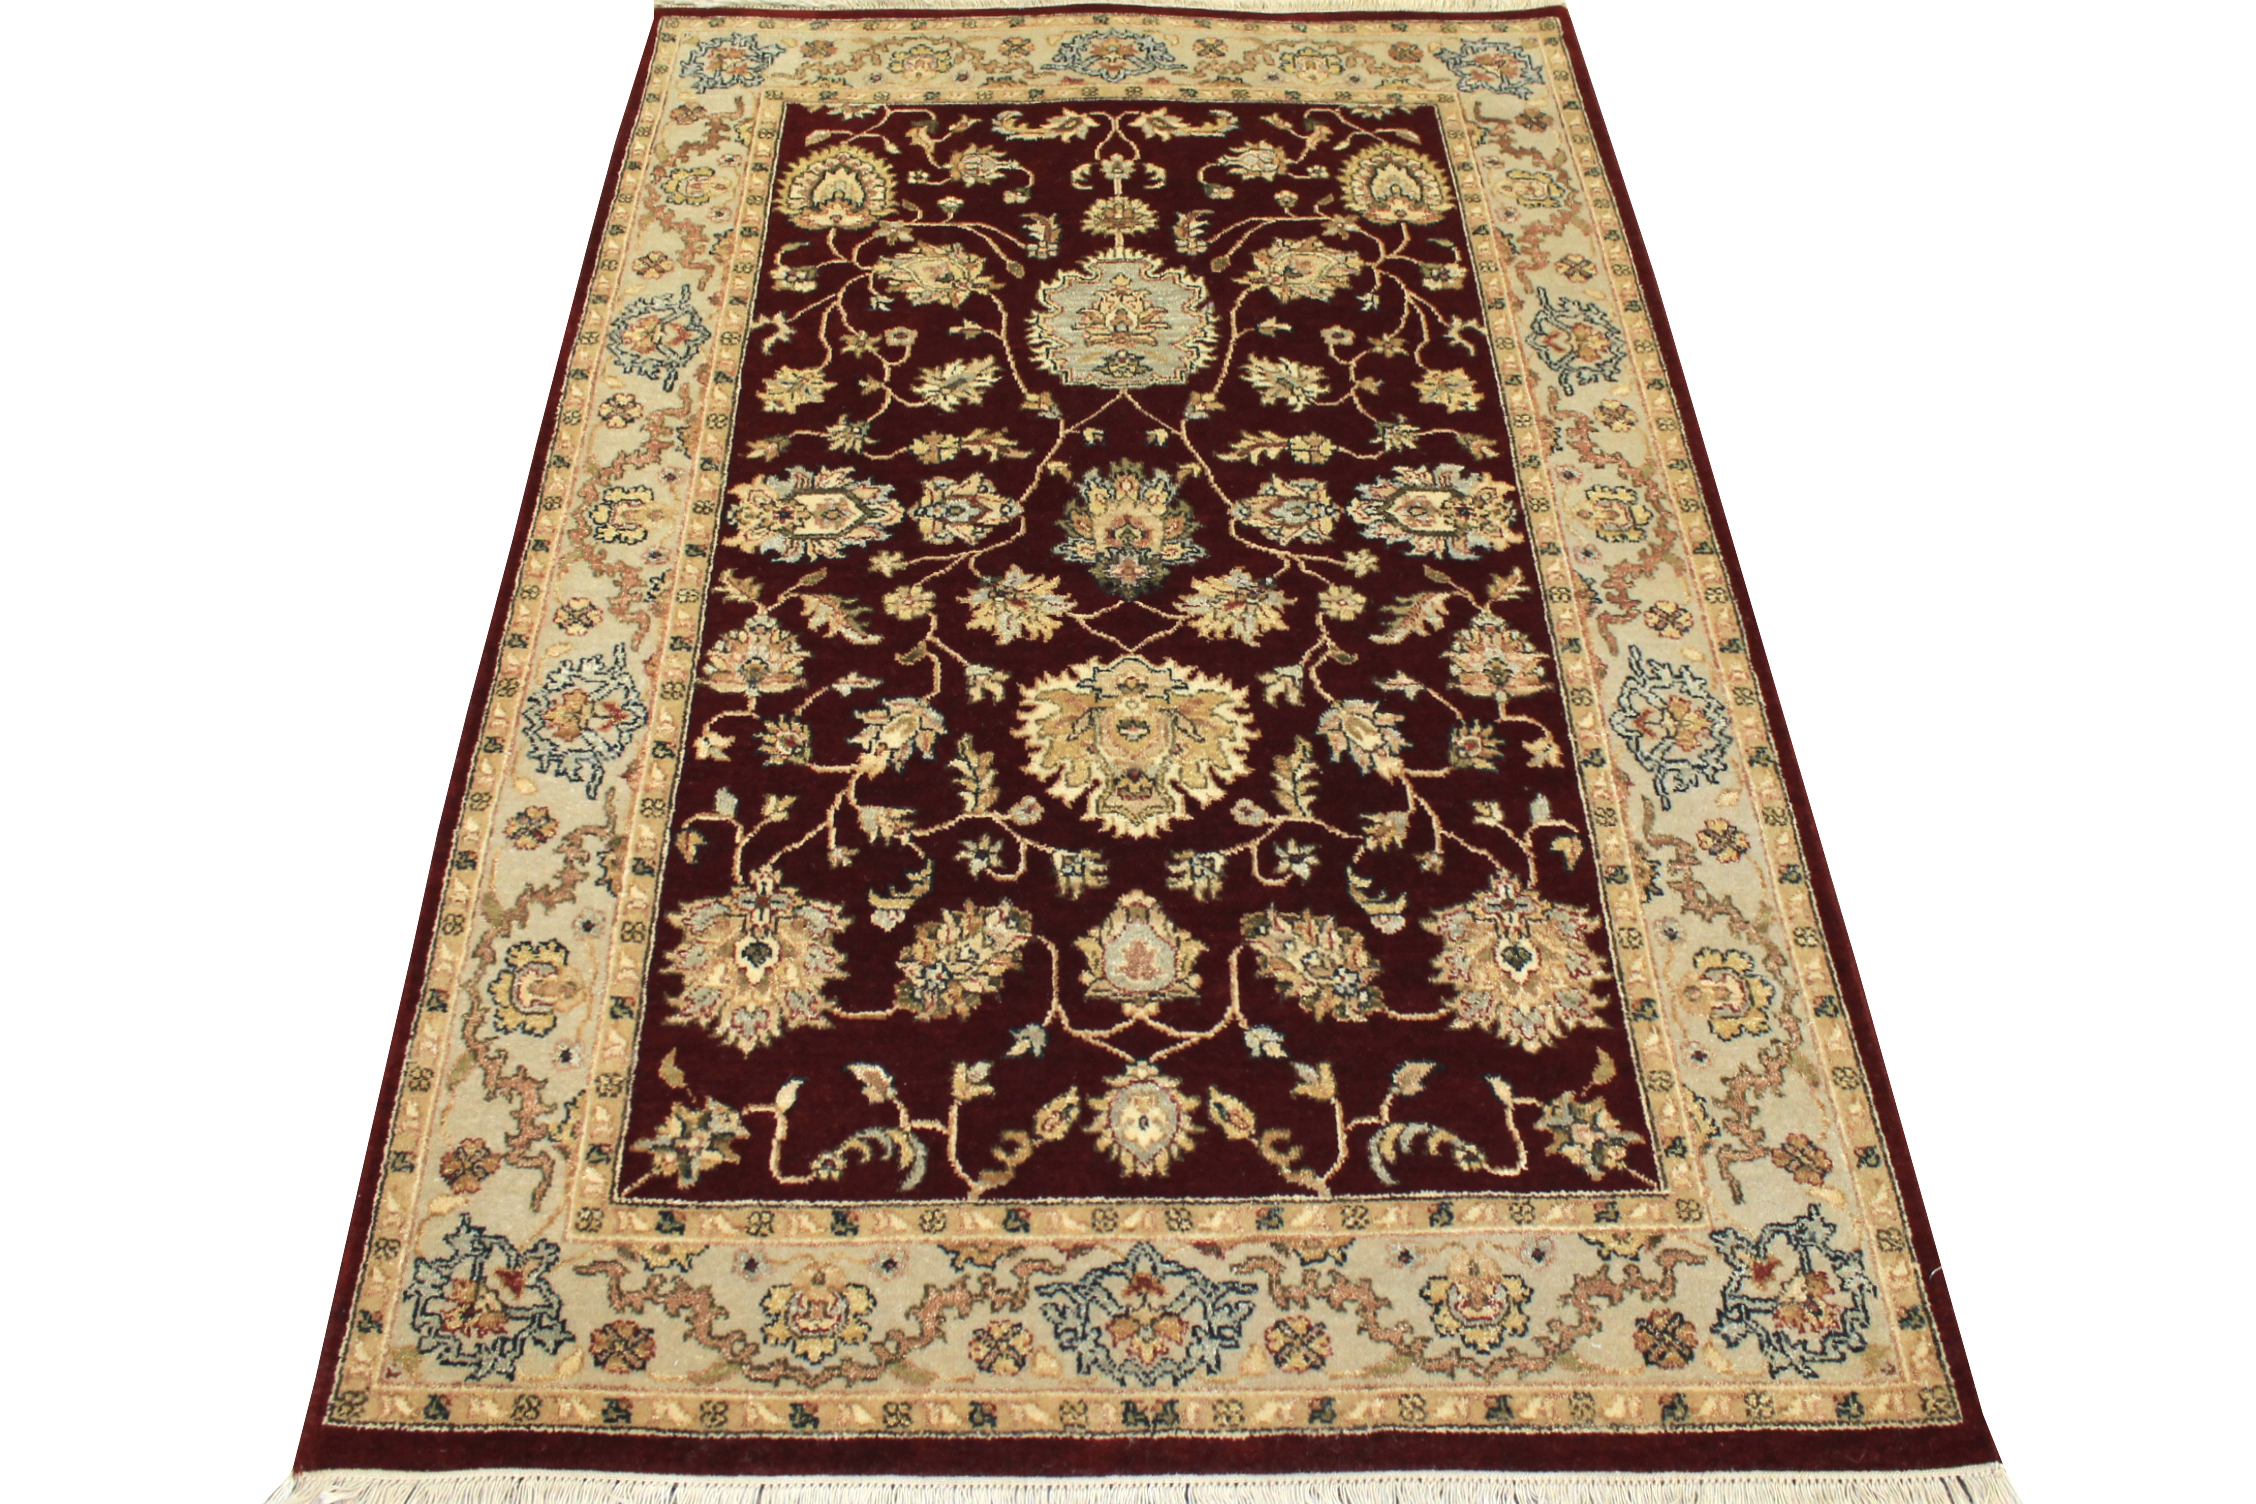 4x6 Traditional Hand Knotted Wool Area Rug - MR12235